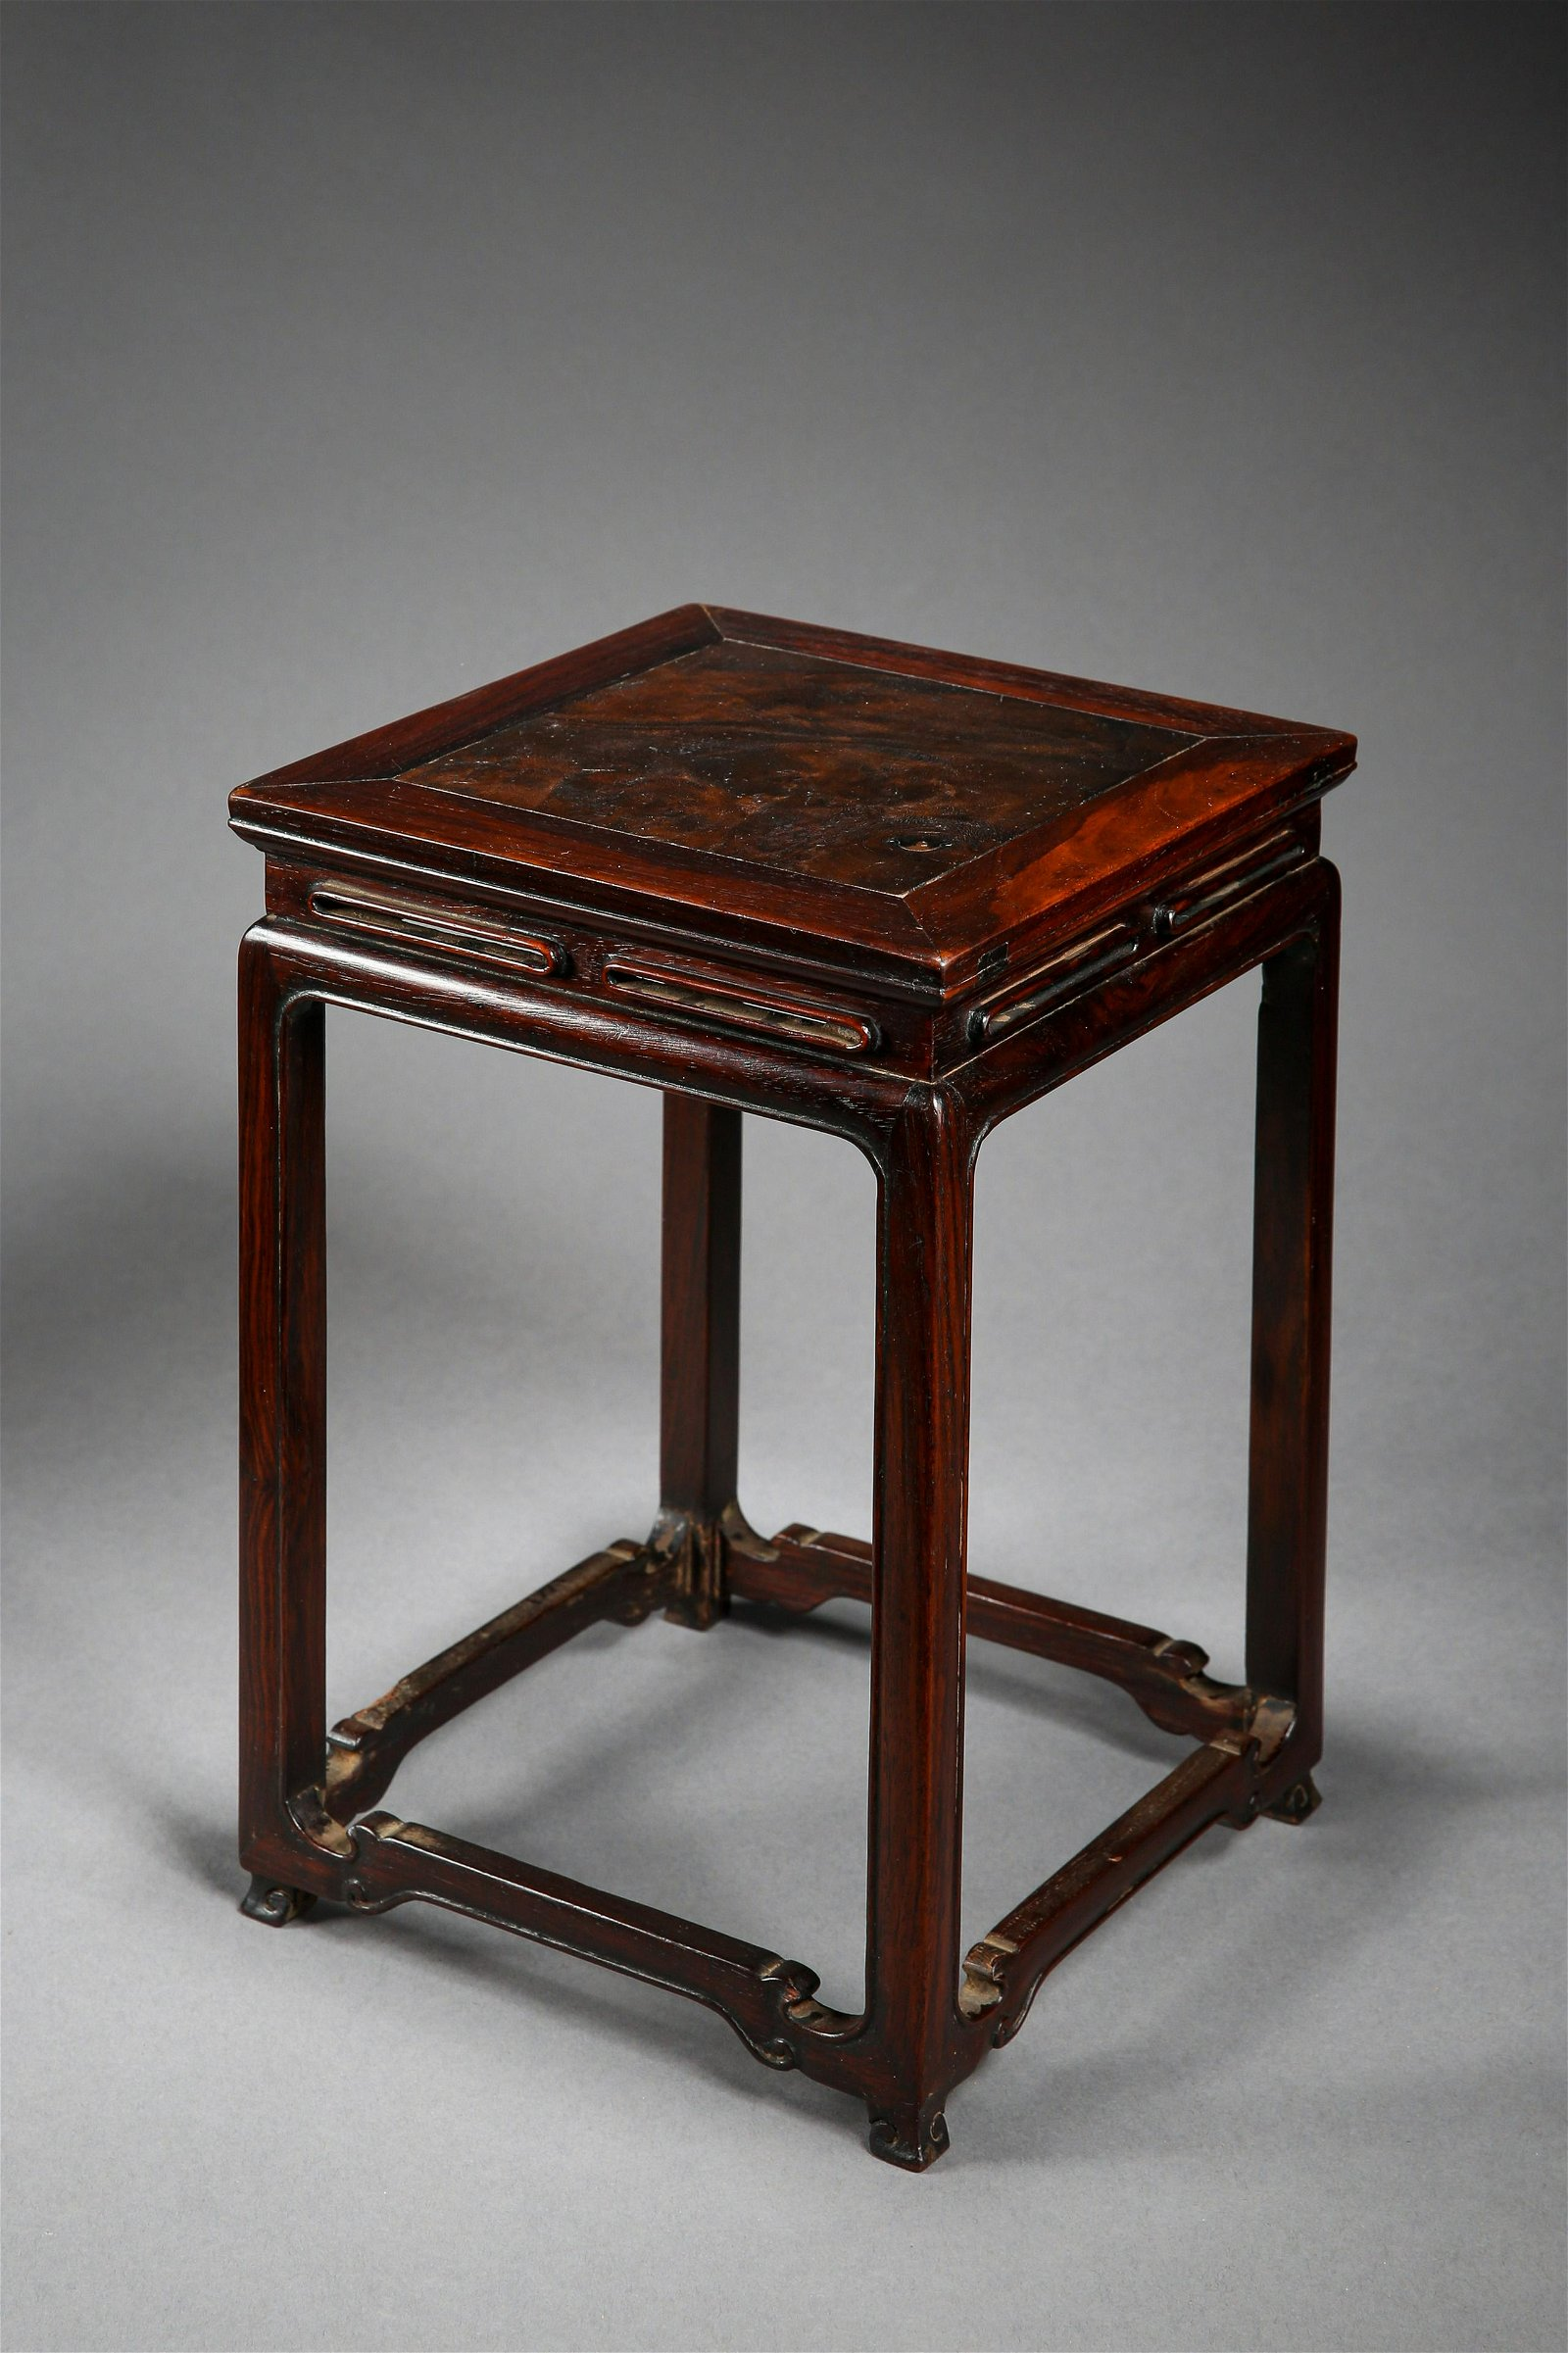 A Carved Huanghuali Plant Stand of Qing Dynasty